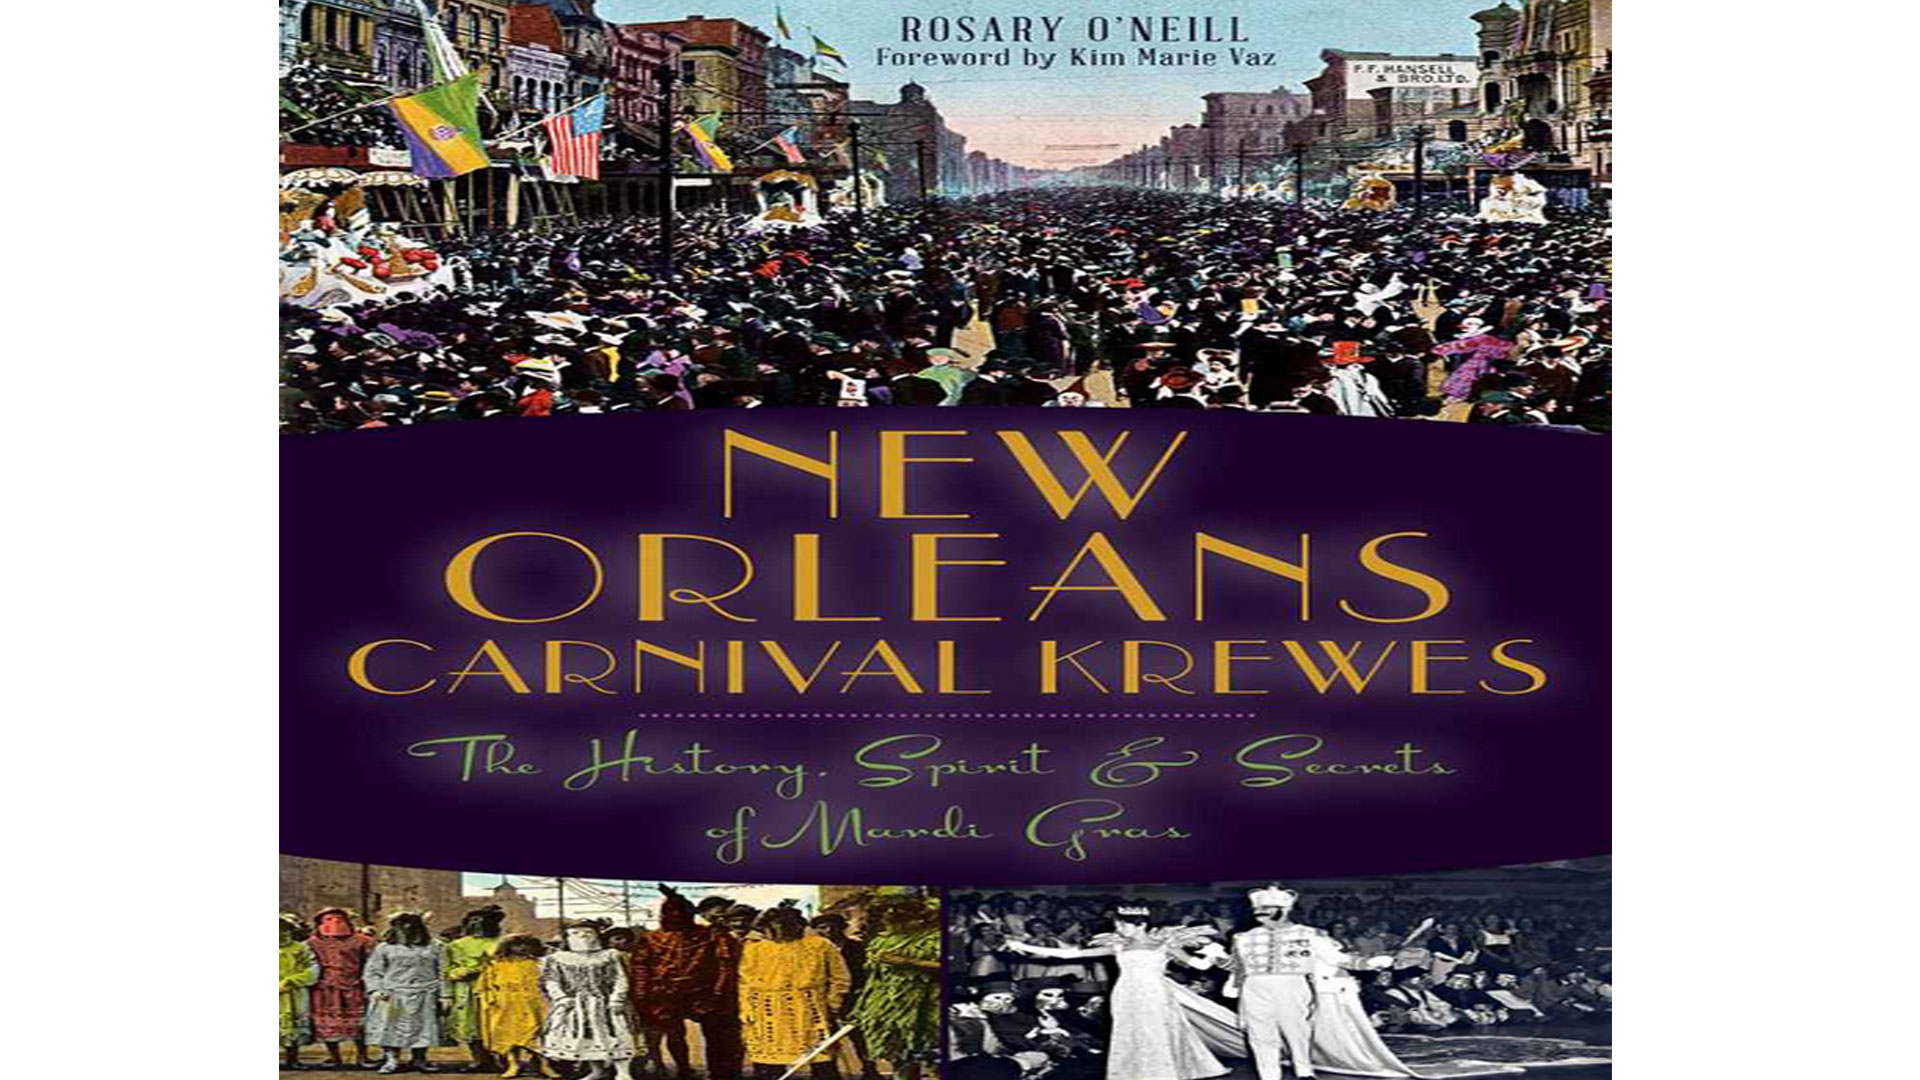 carnival_krewes